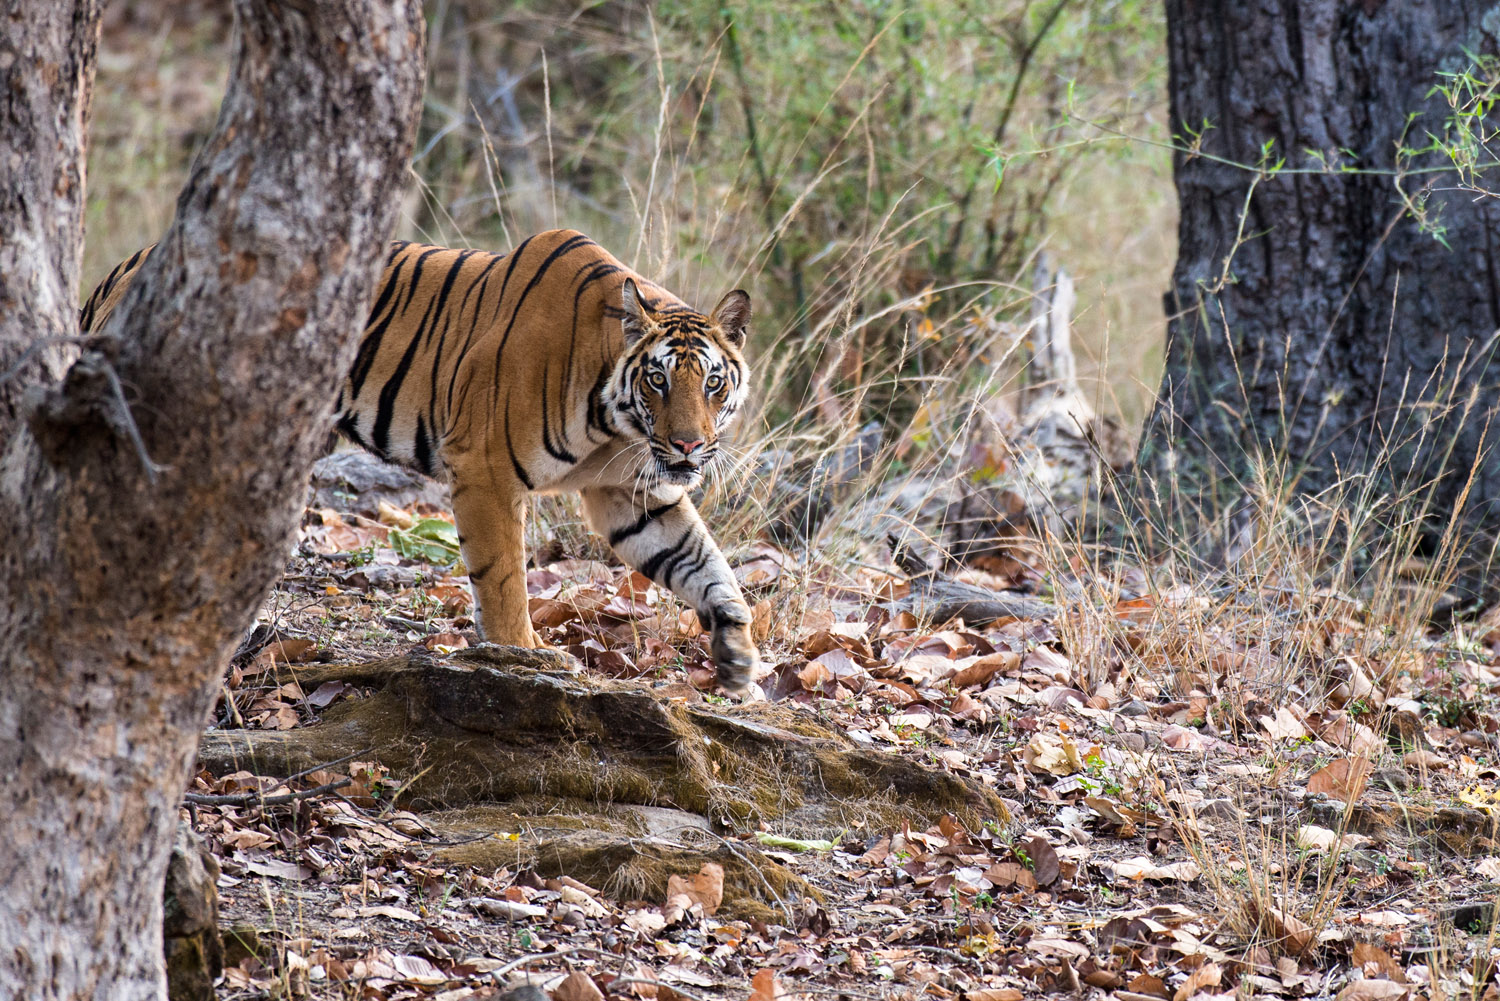 Bengal tigress emerging from sal forest, Bandhavgarh National Park, Madhya Pradesh, India